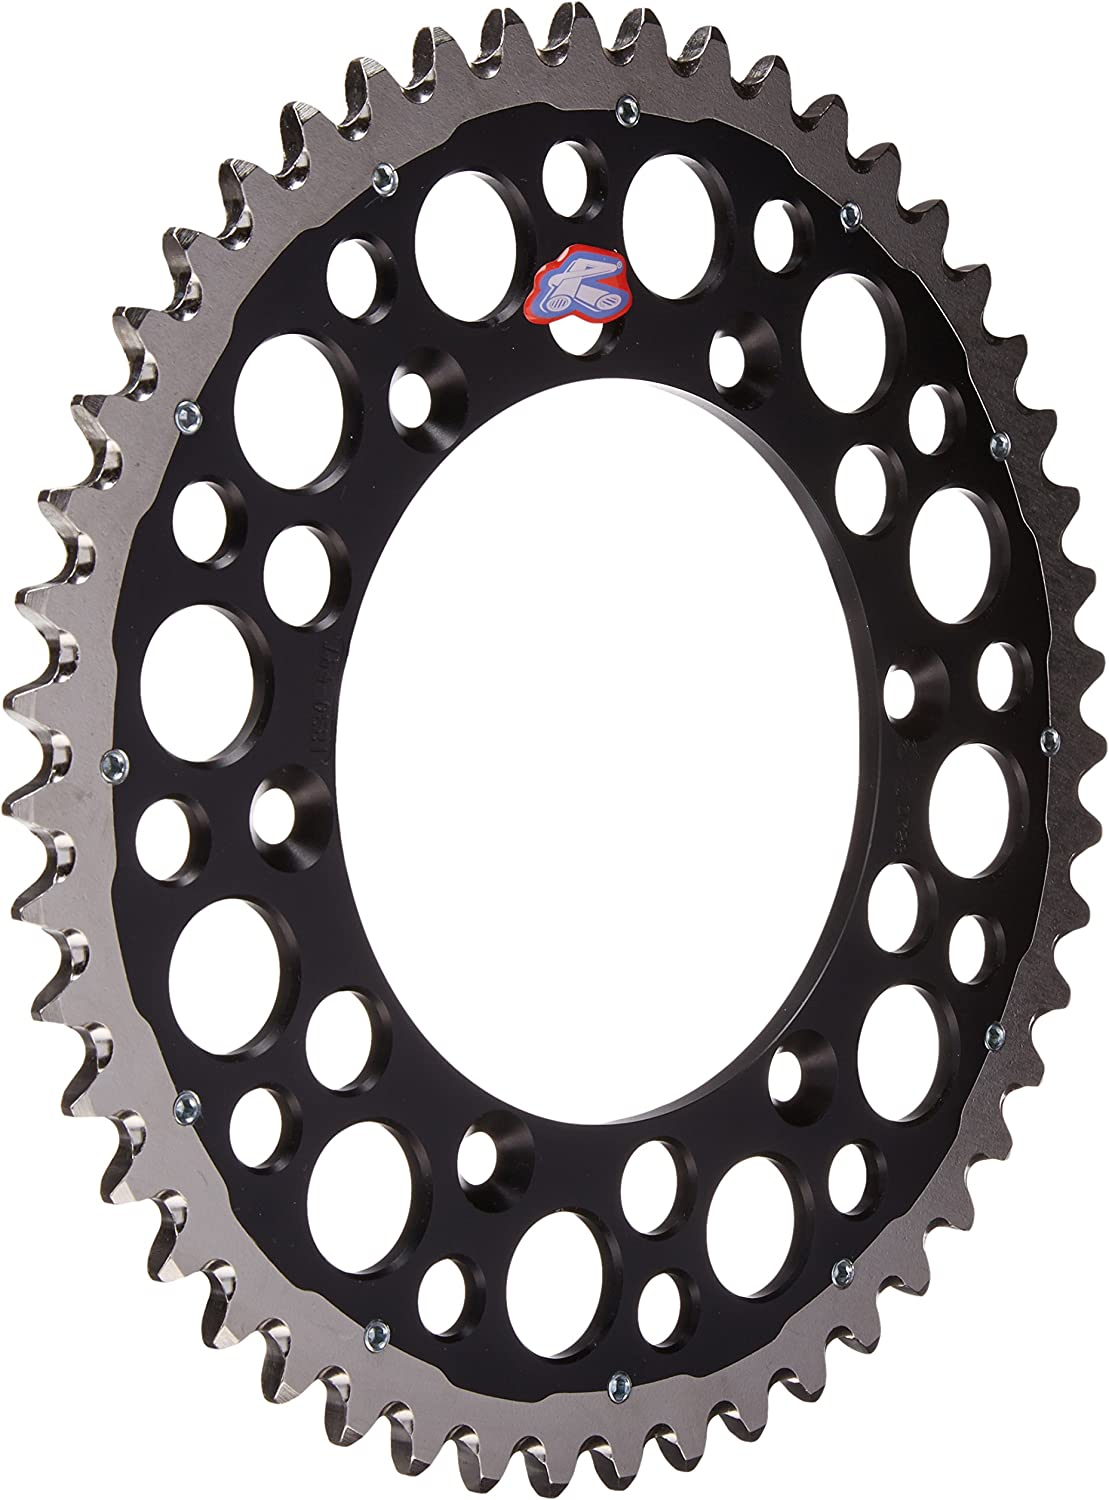 Renthal 1230-520-49GPBK Twinring Black Sprocket 49 Max 78% OFF Tooth Rear Max 75% OFF